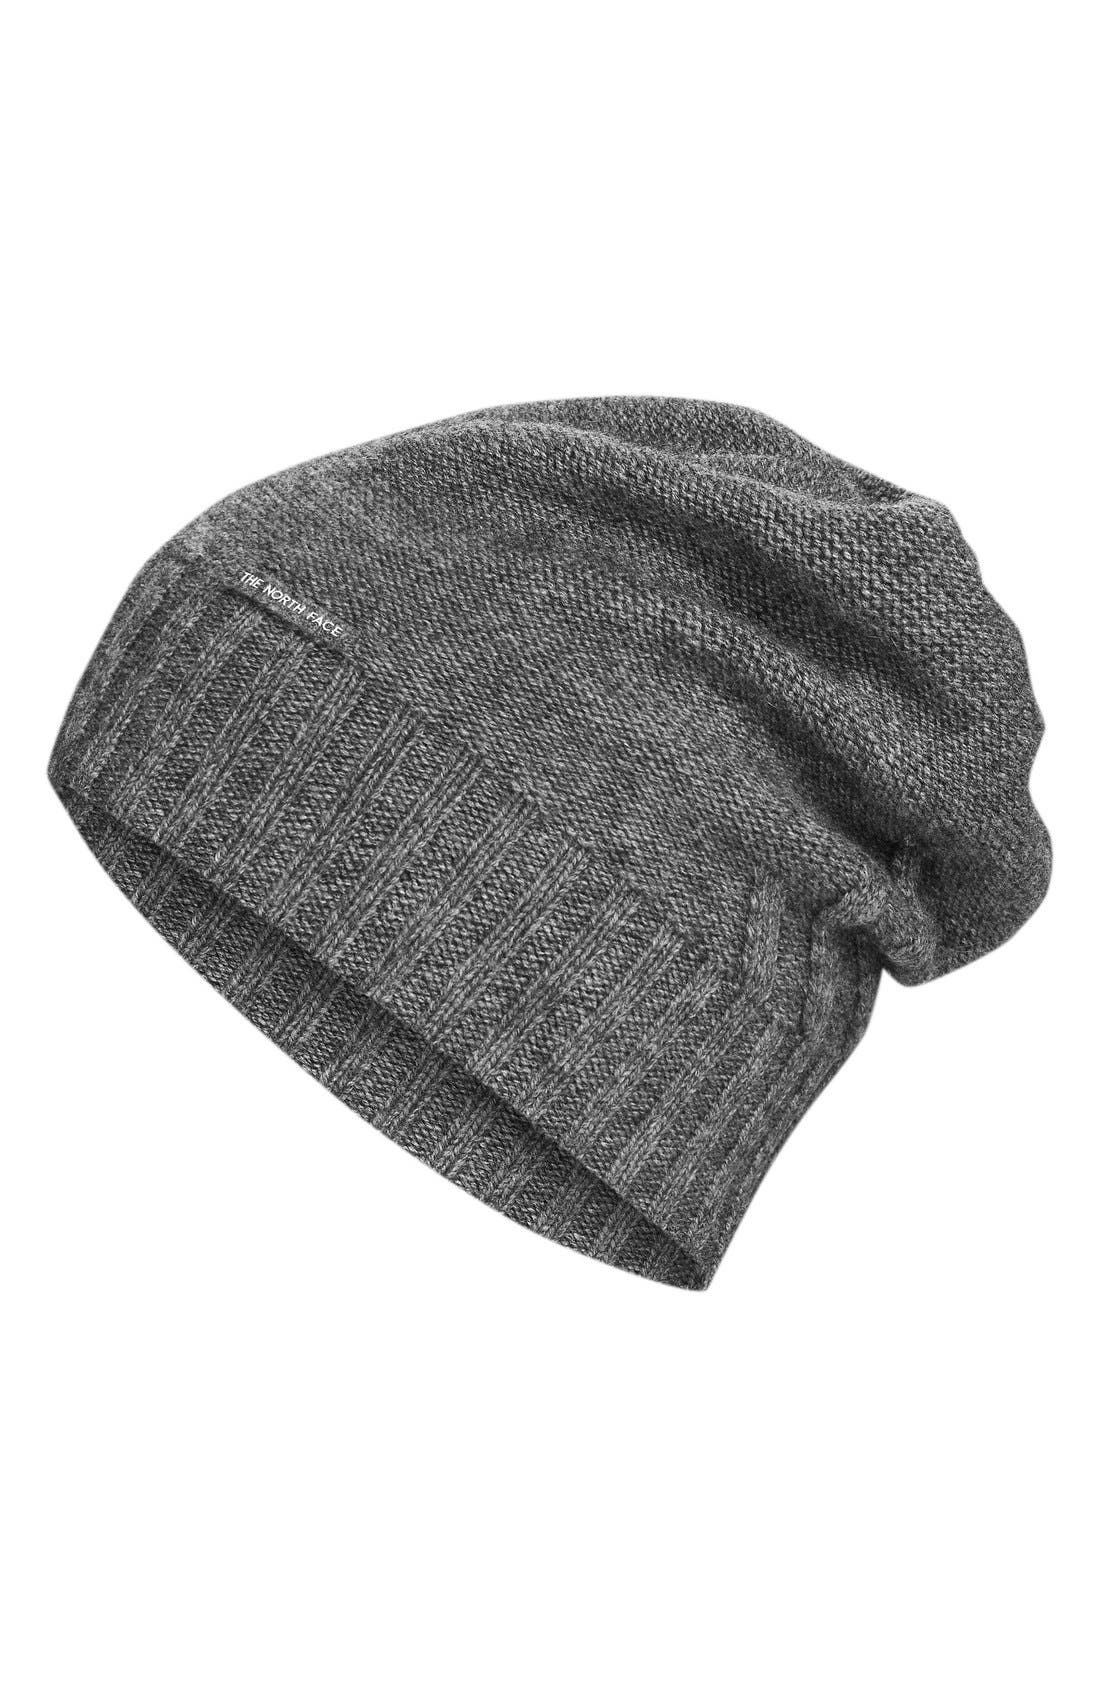 Alternate Image 1 Selected - The North Face 'Classic' Wool Beanie